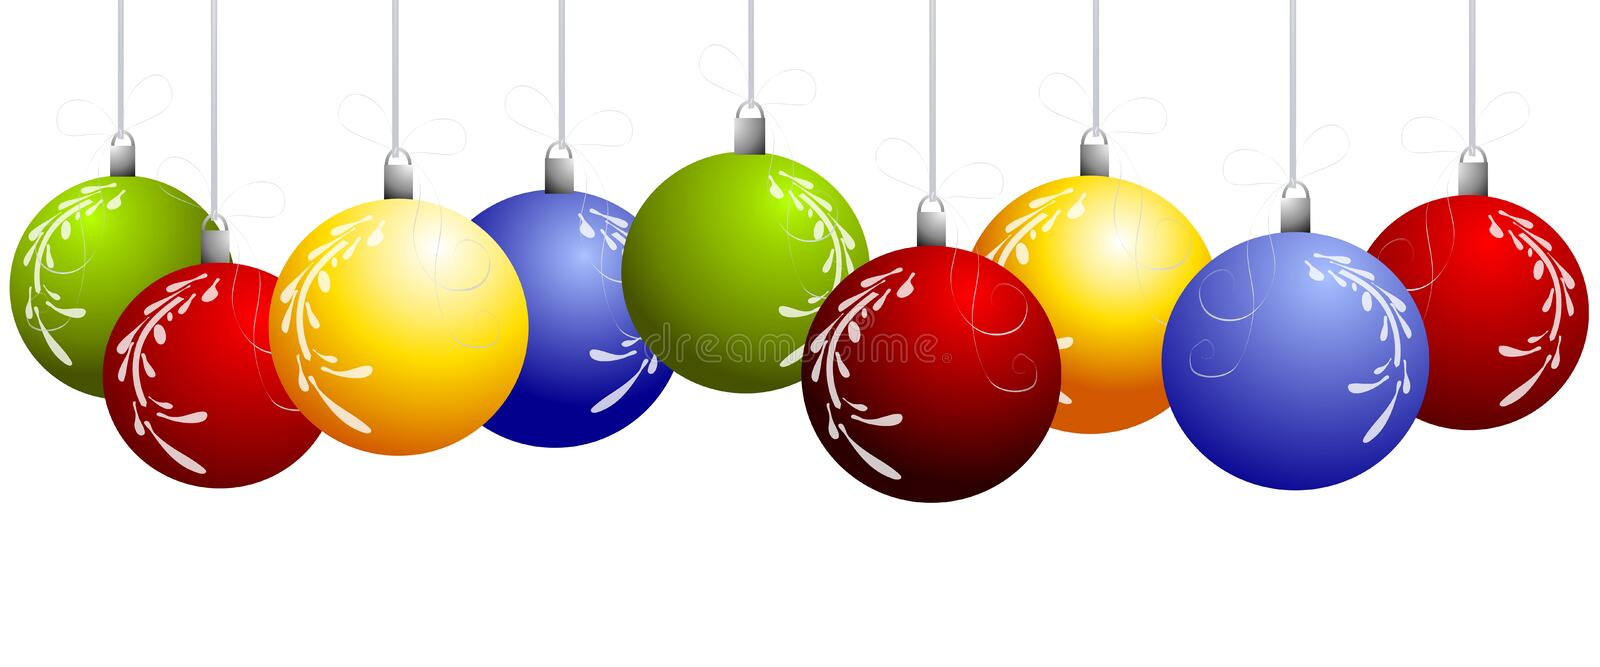 Row of Hanging Christmas Ornaments Border stock illustration